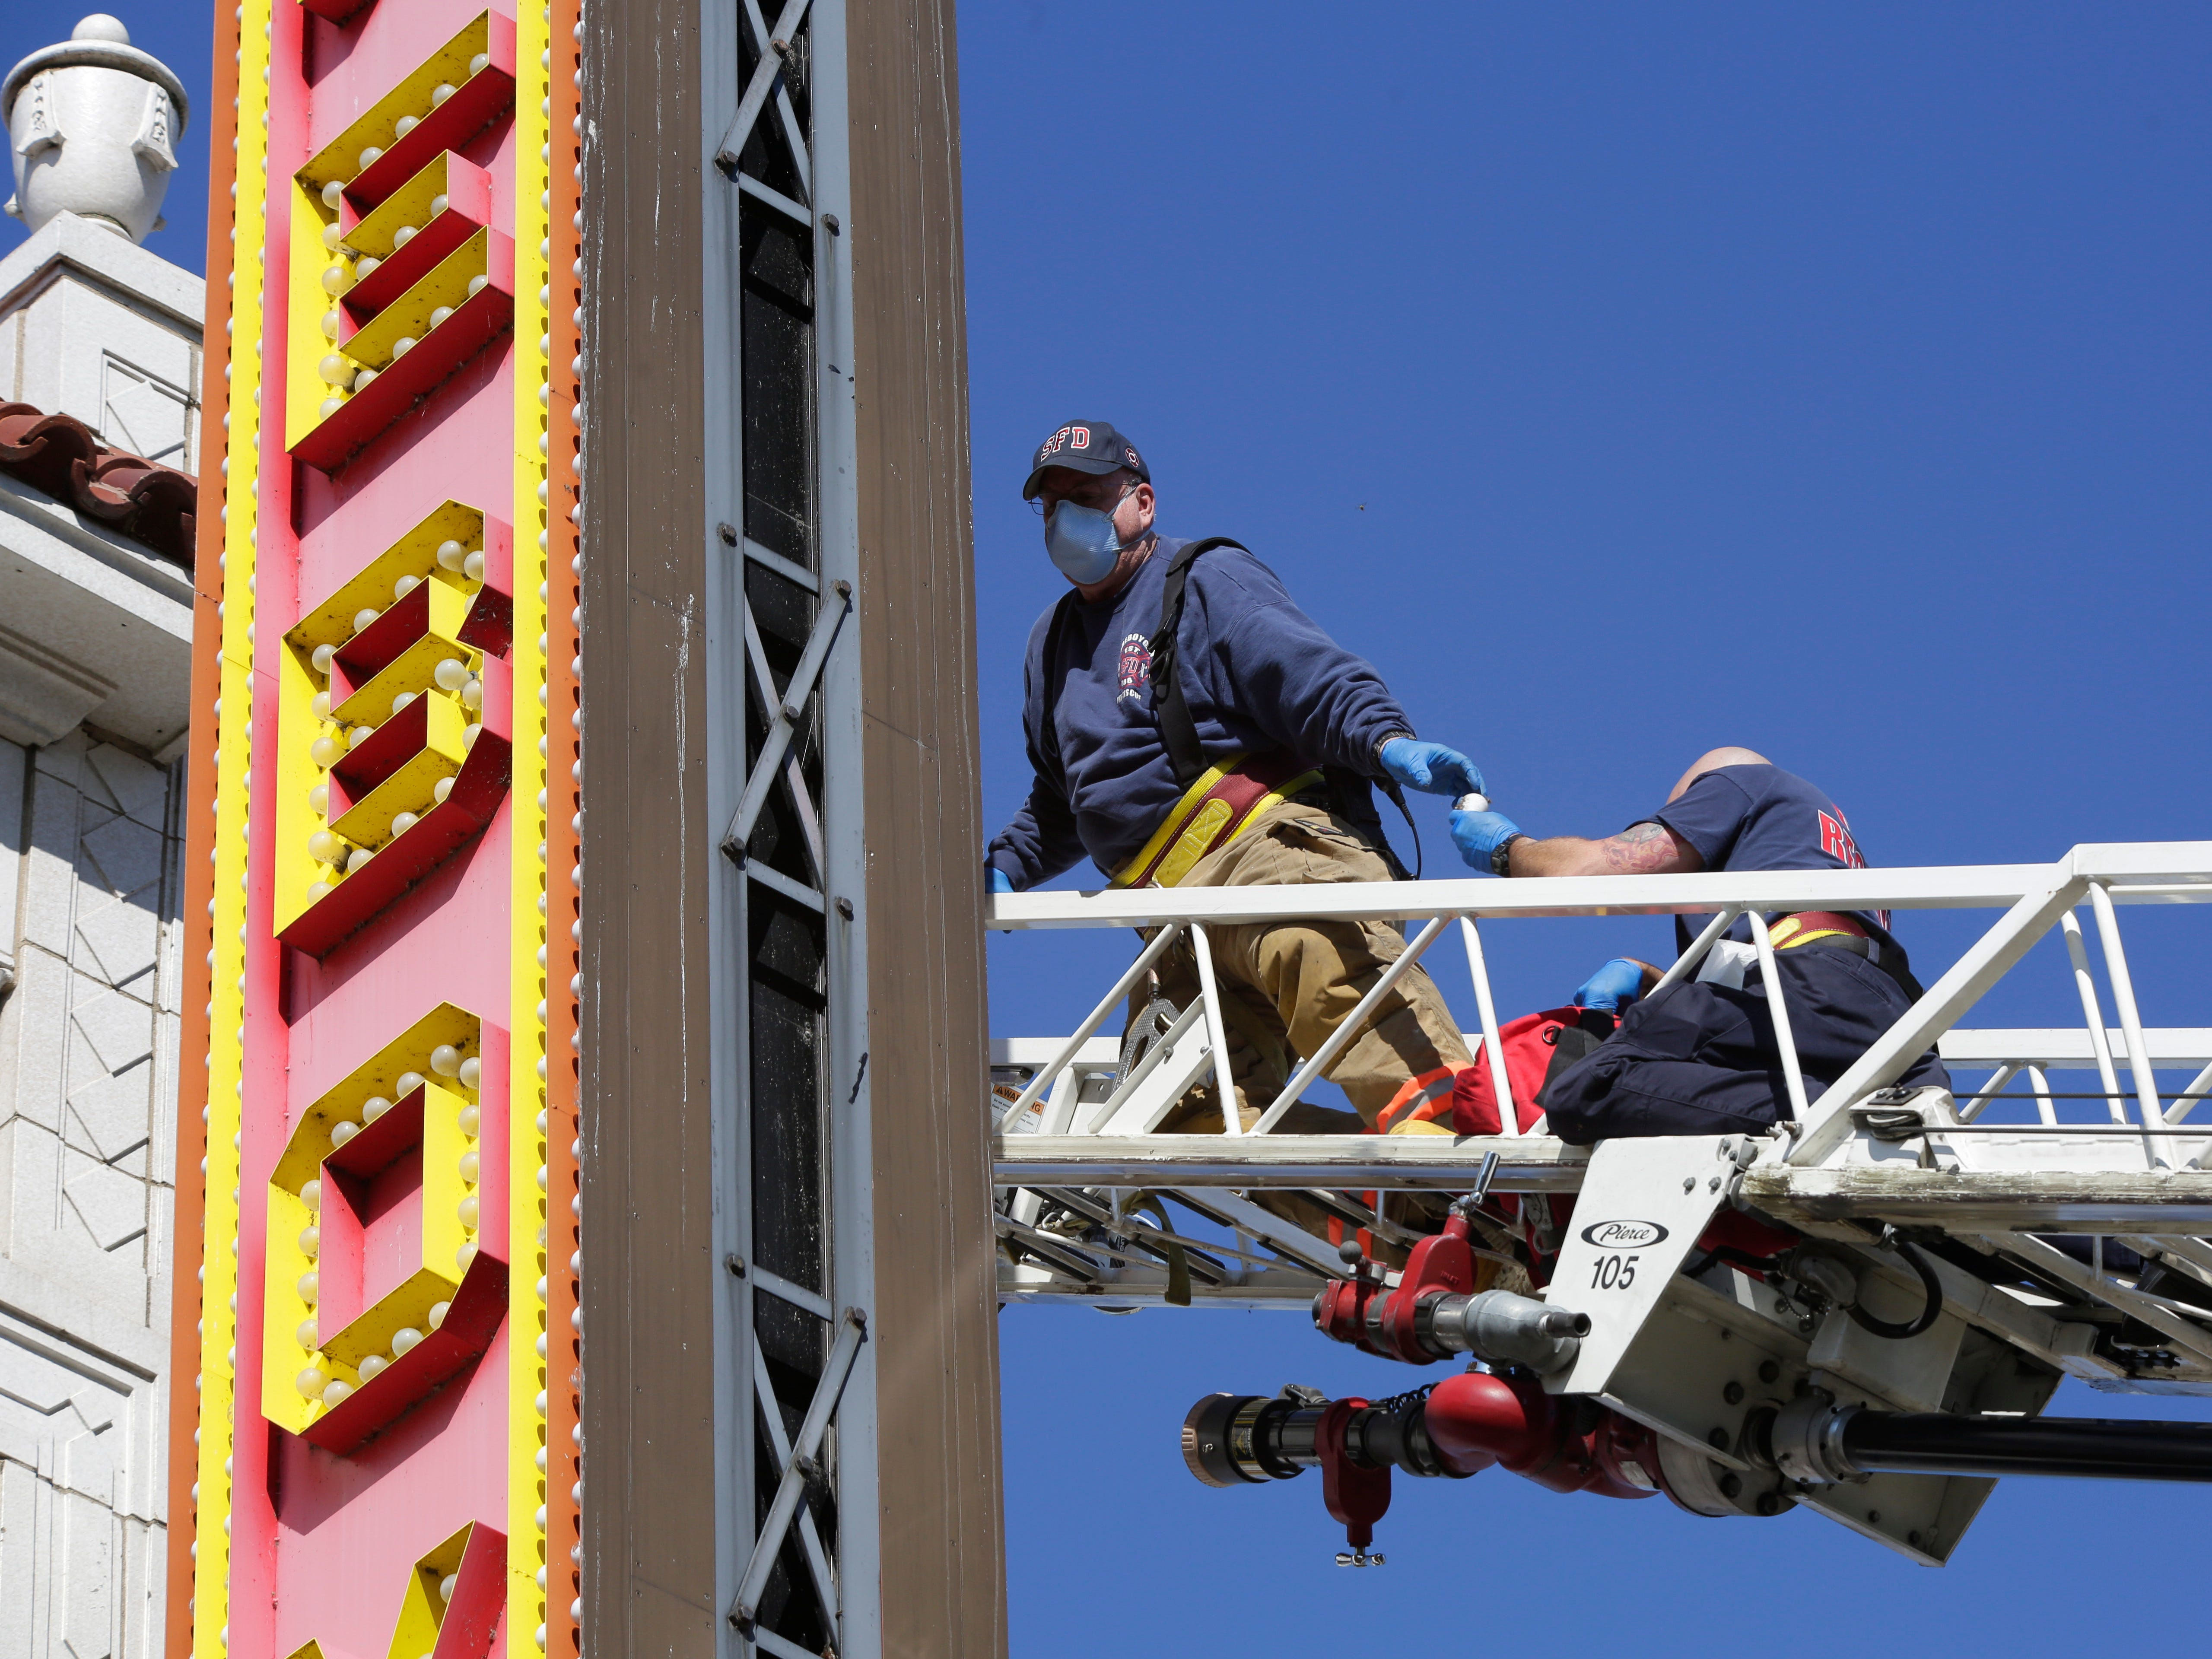 City of Sheboygan firefighters install new LED bulbs at the Stefanie H. Weill Center for the Performing Arts, Sunday, September 23, 2018, in Sheboygan, Wis. The marquee has some 3000 bulbs that will be going to LED.